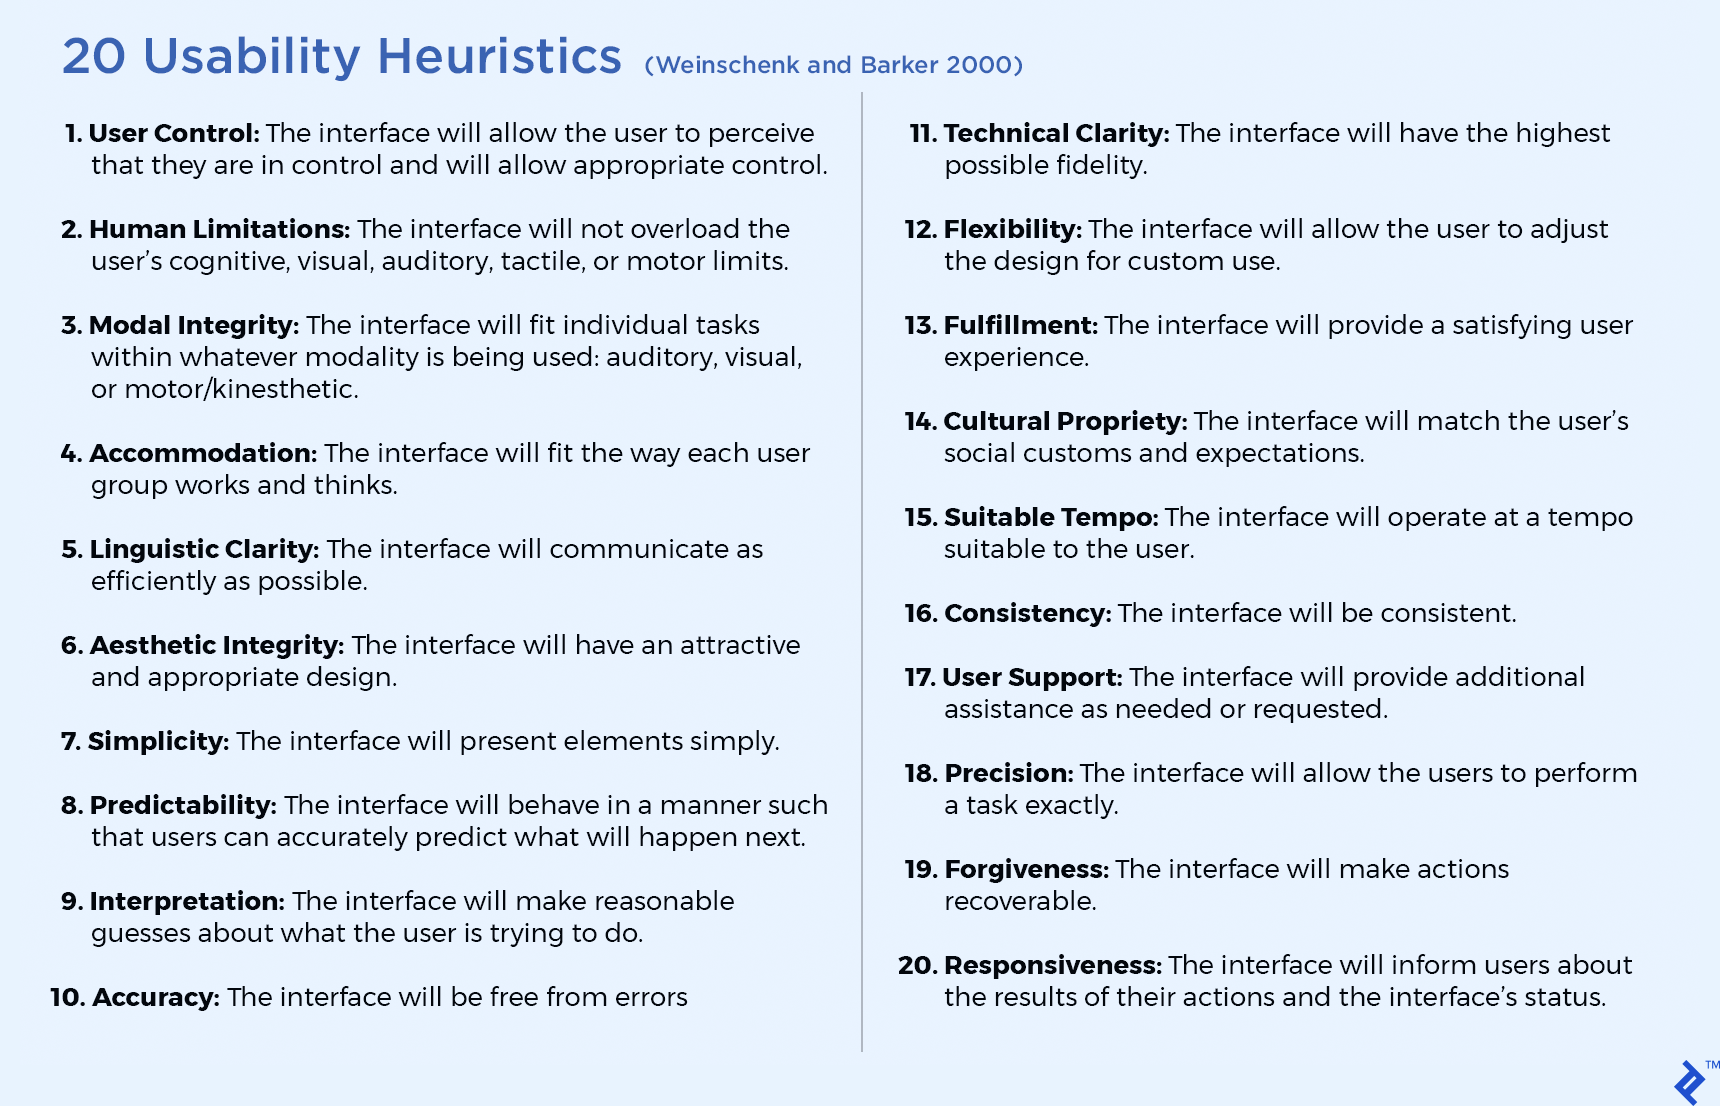 20 Usability Heuristics used during heuristic analysis to identify usability issues